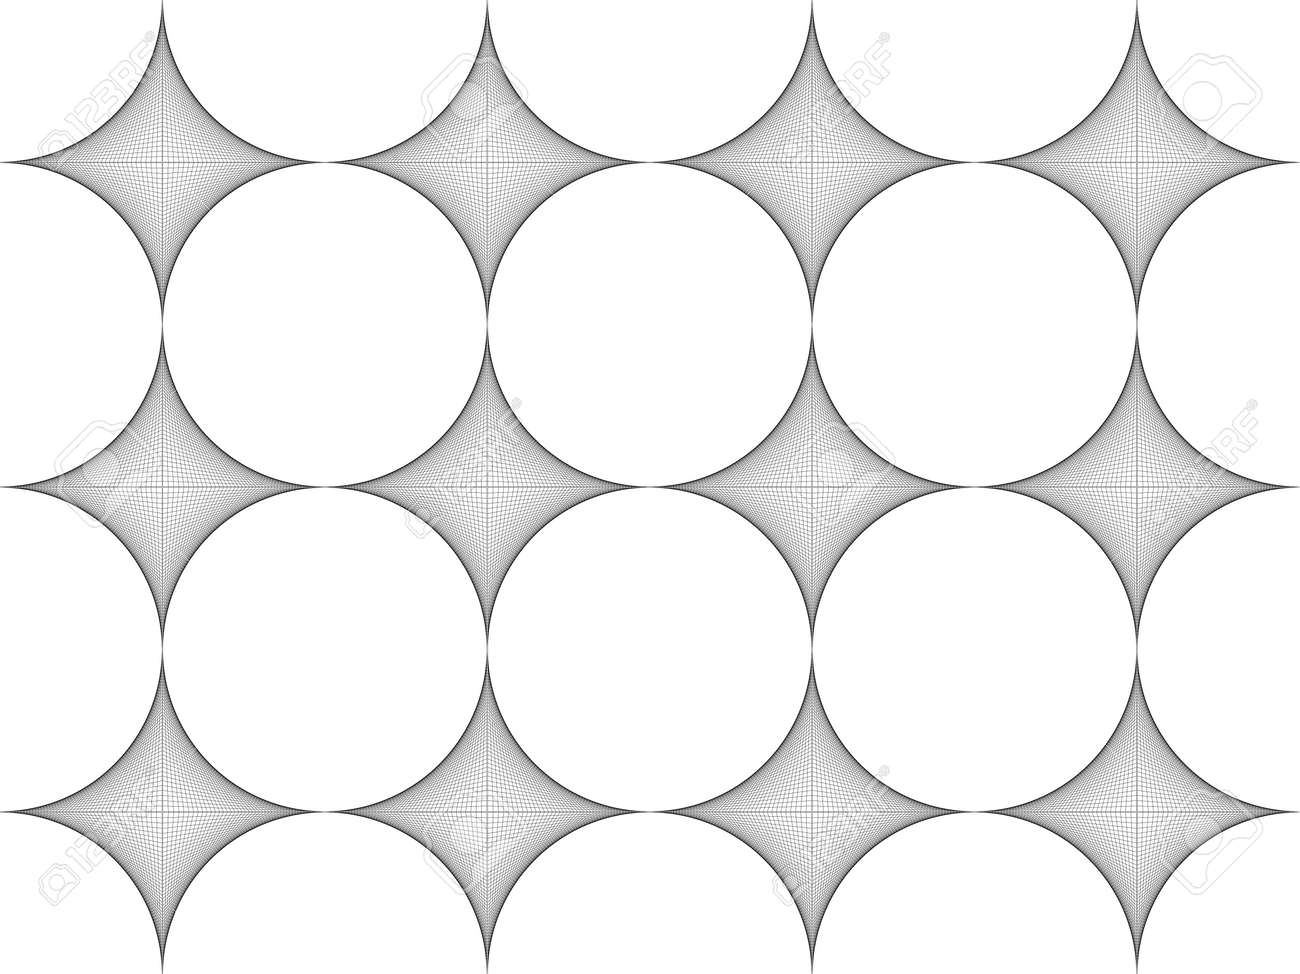 Seamless pattern. Stylish texture. Thread art, Strings line, Tile with regularly repeating geometrical elements, shapes, rhombuses, arches, crossed circles. Monochrome. Backdrop. Web. - 173882355